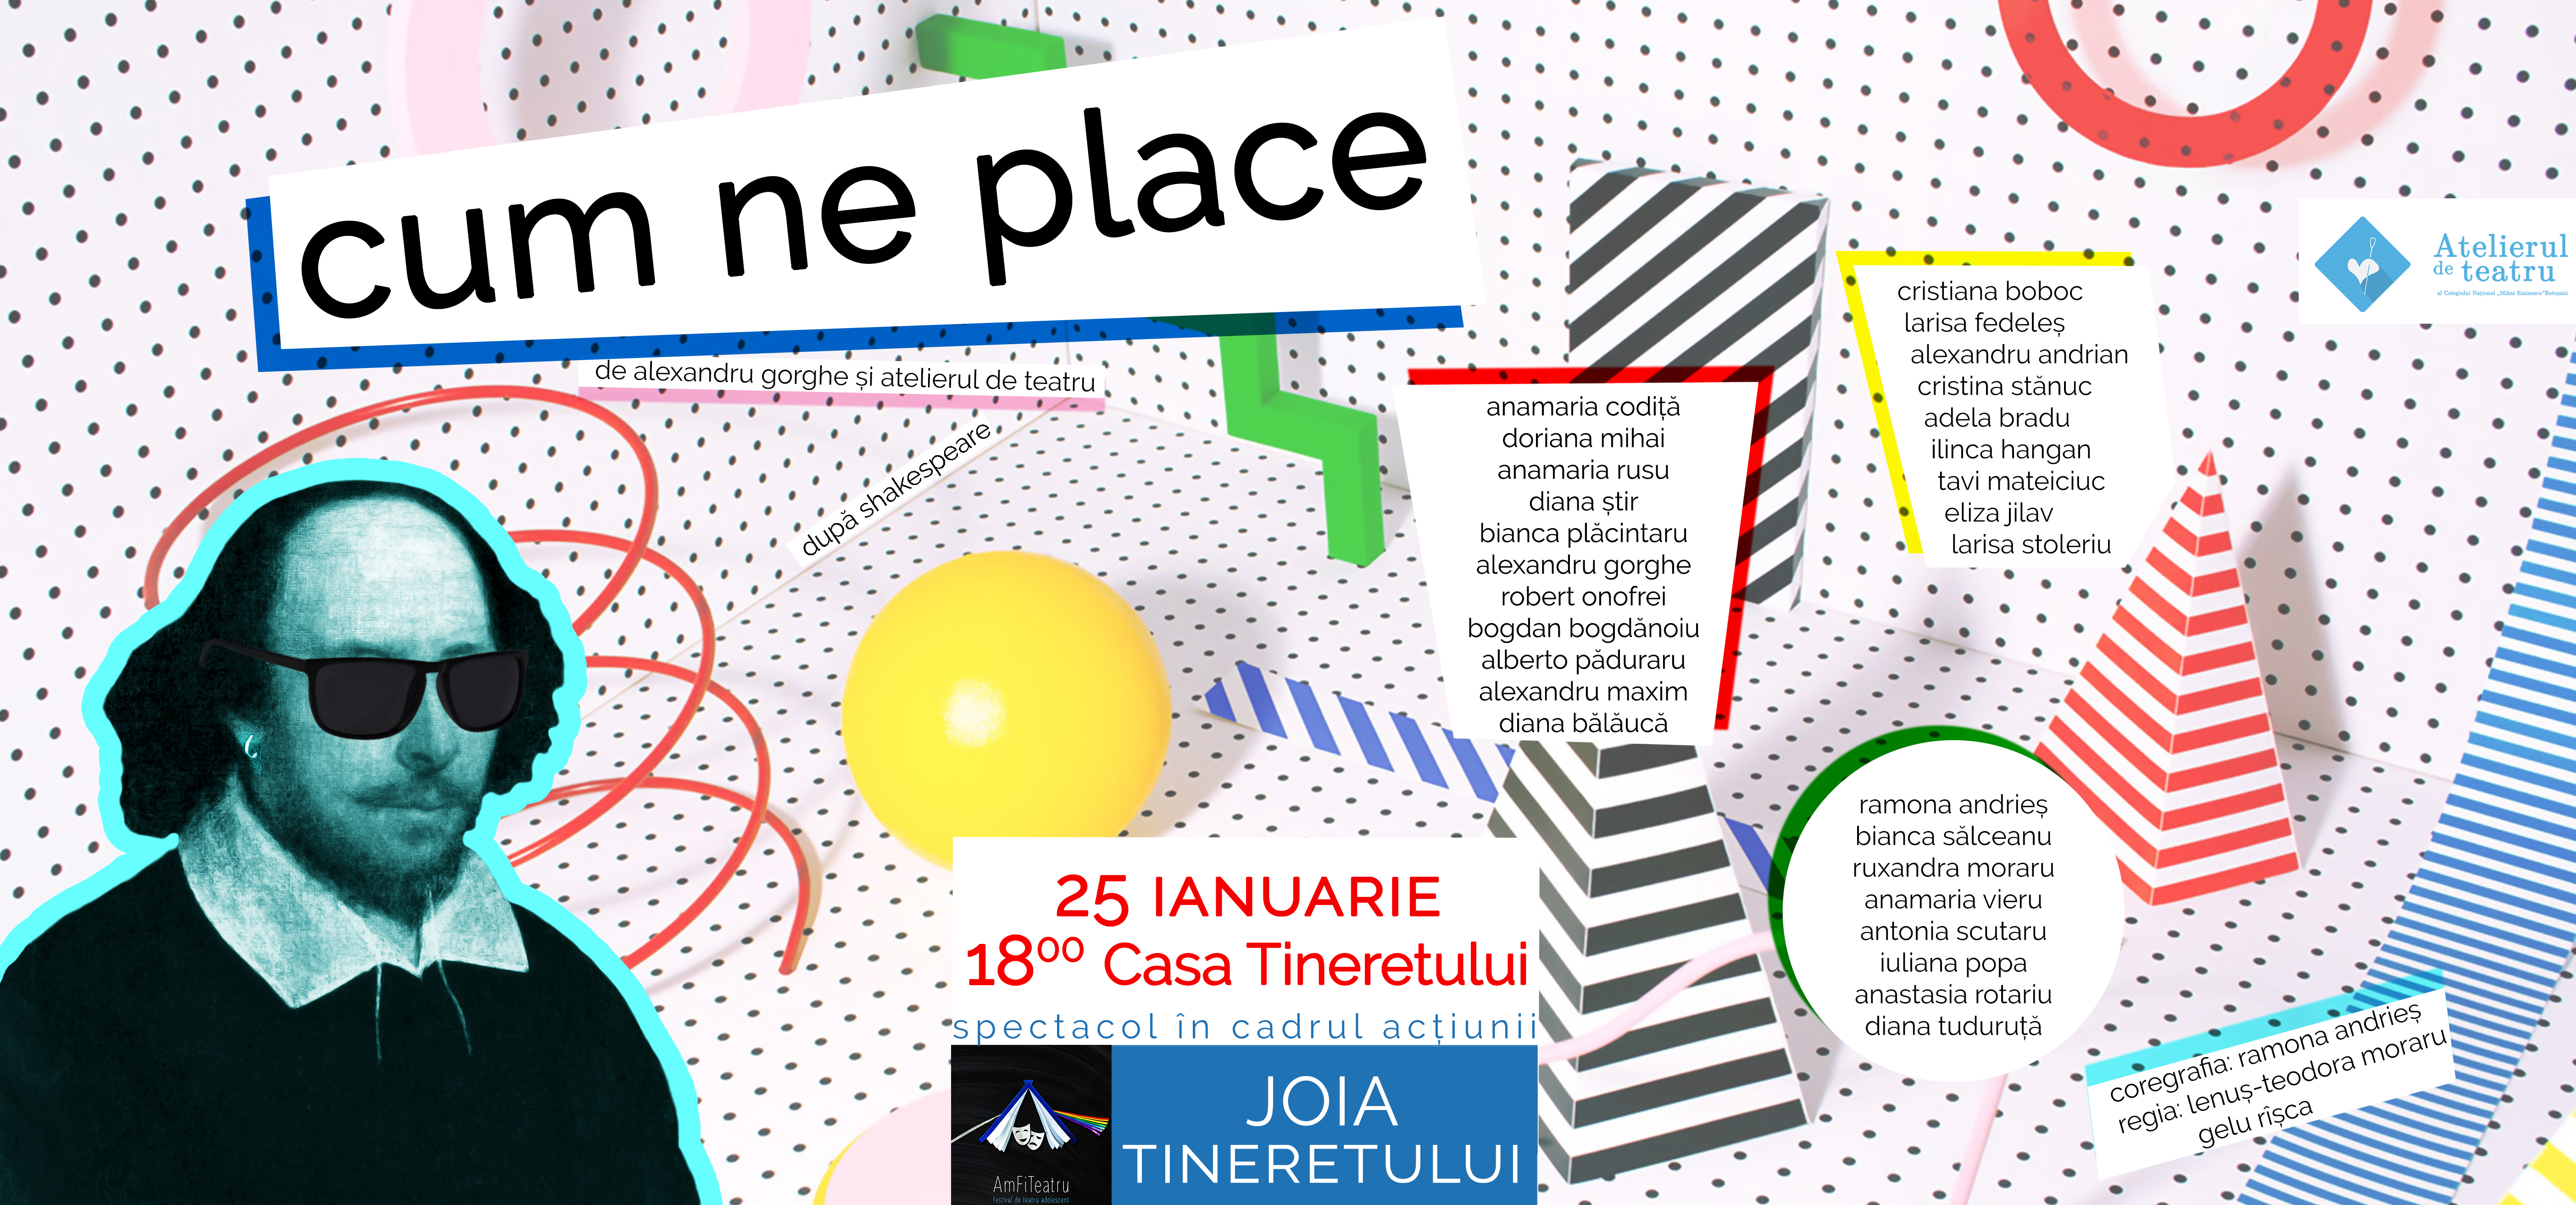 cumneplace Cover25ian